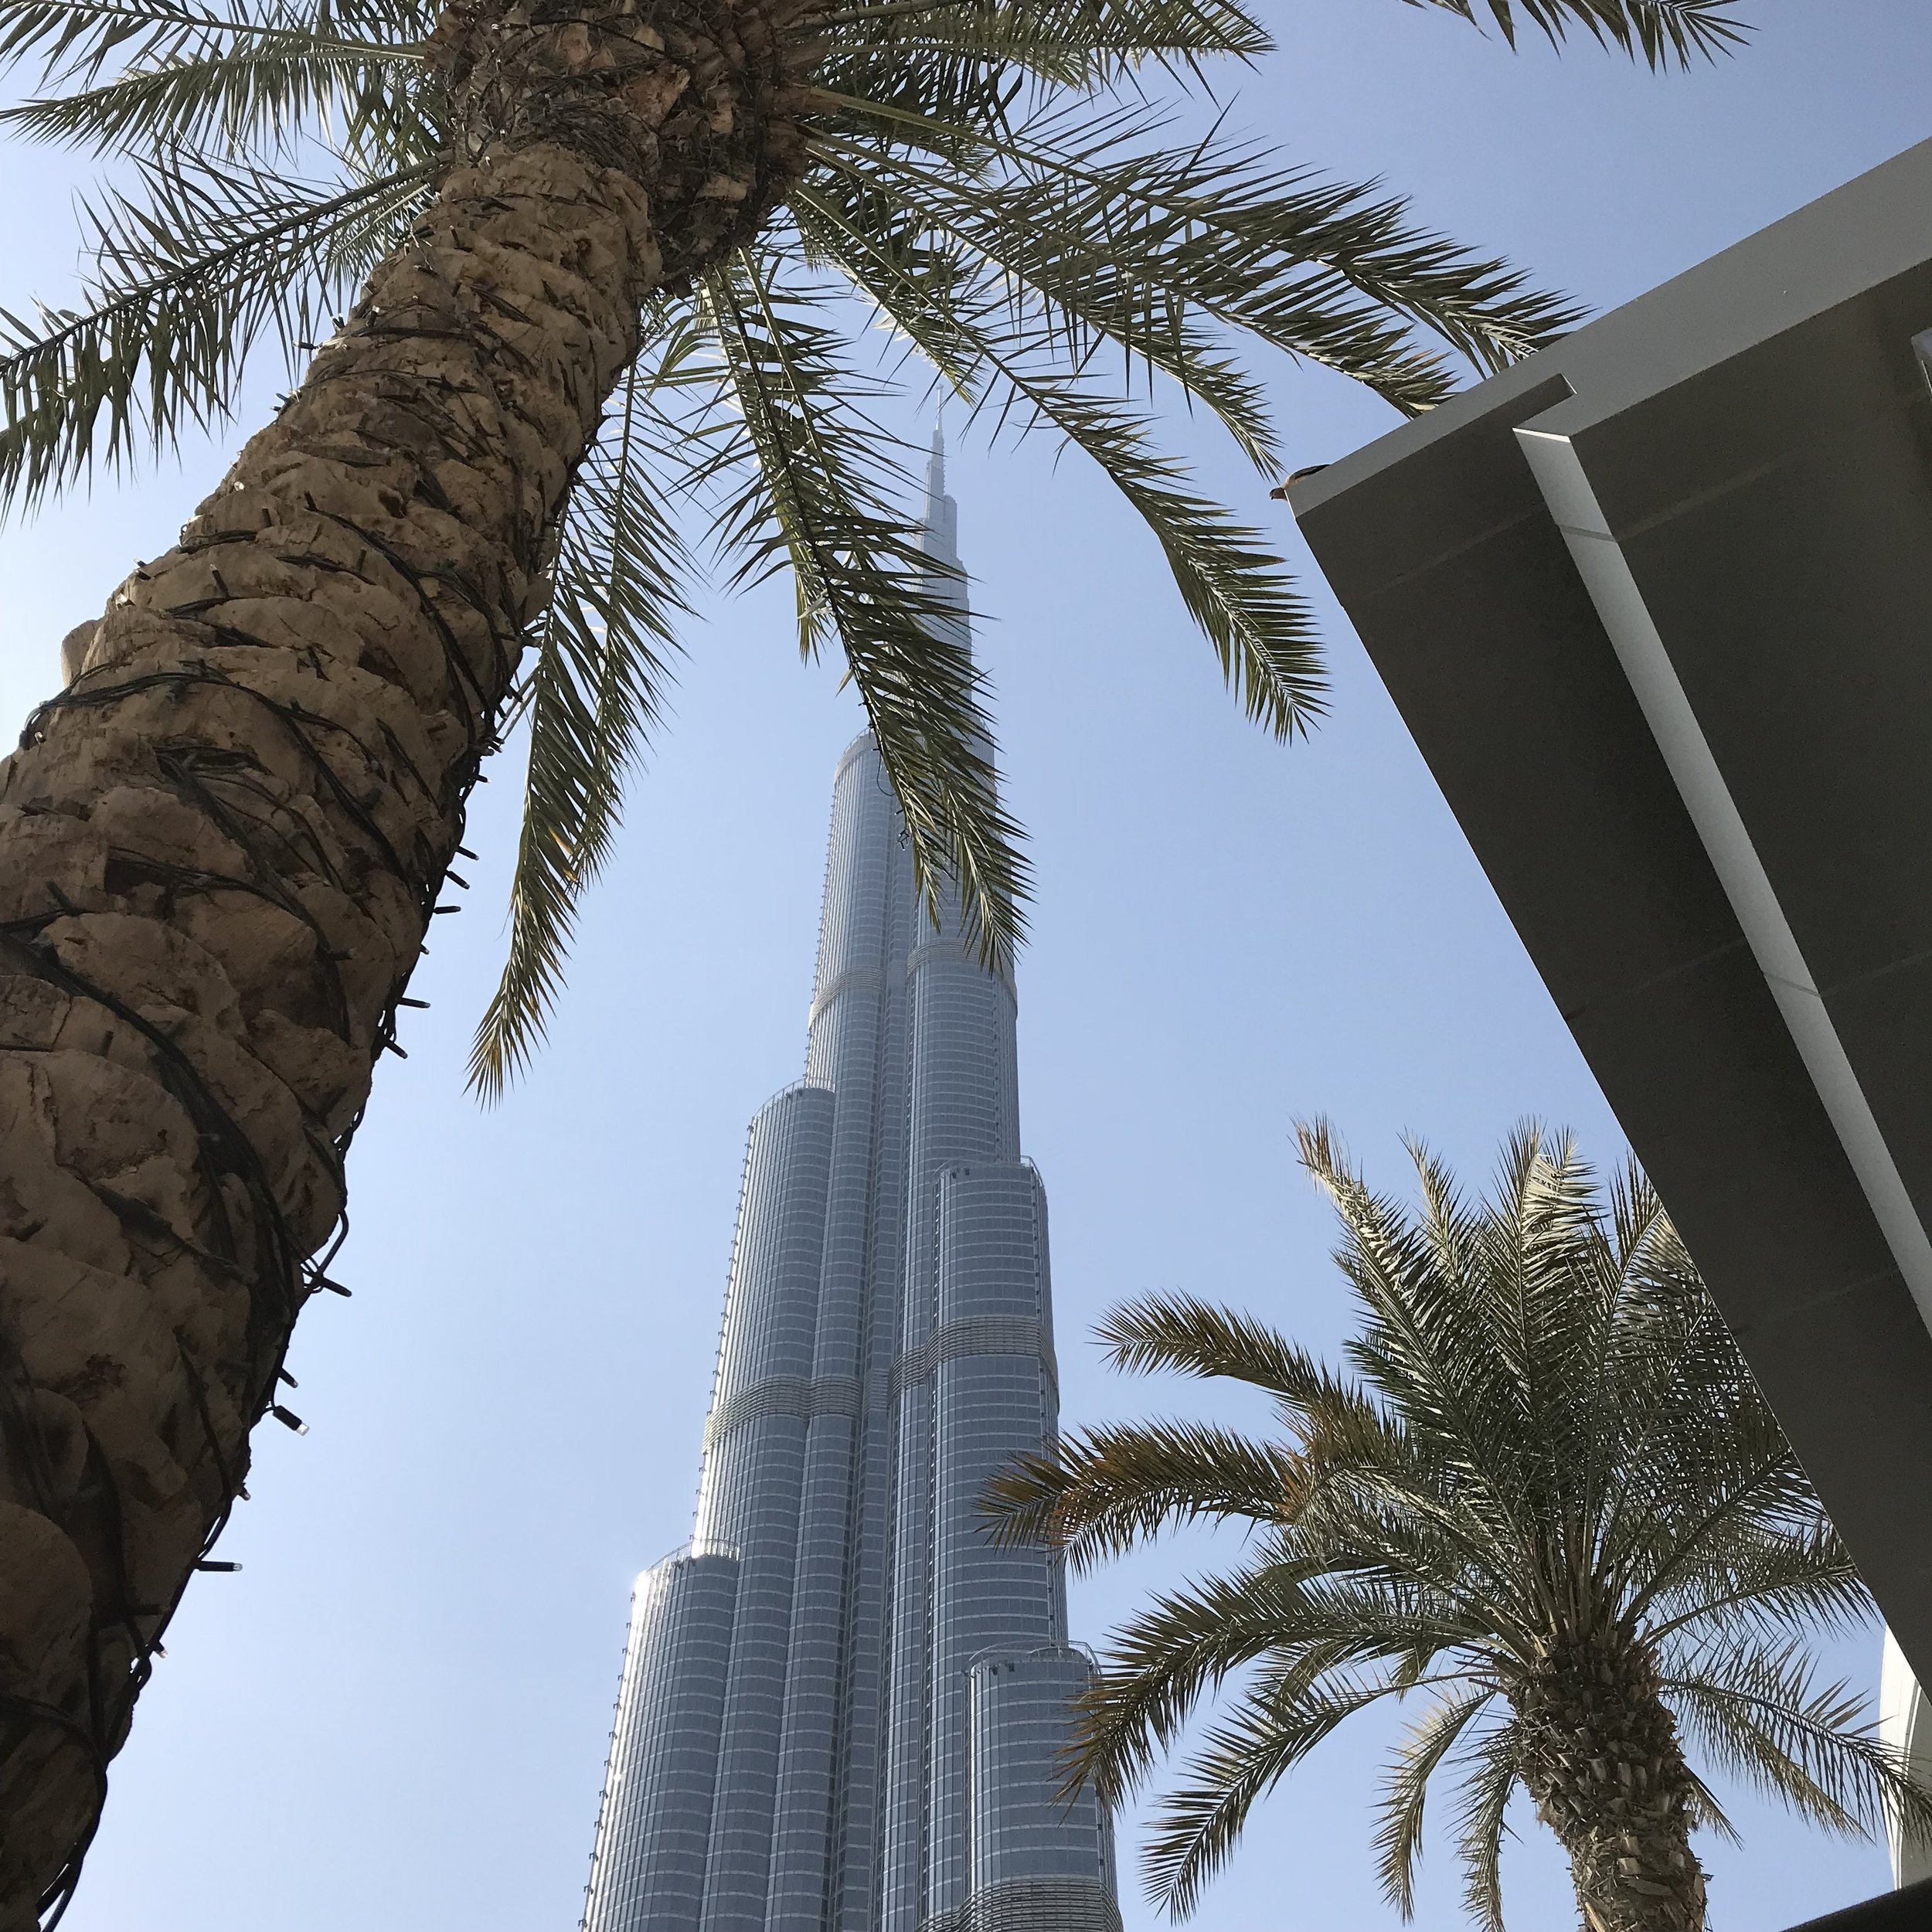 The Burj Khalifa, currently the world's tallest building, as seen from one of the Dubai mall's outdoor restaurants.